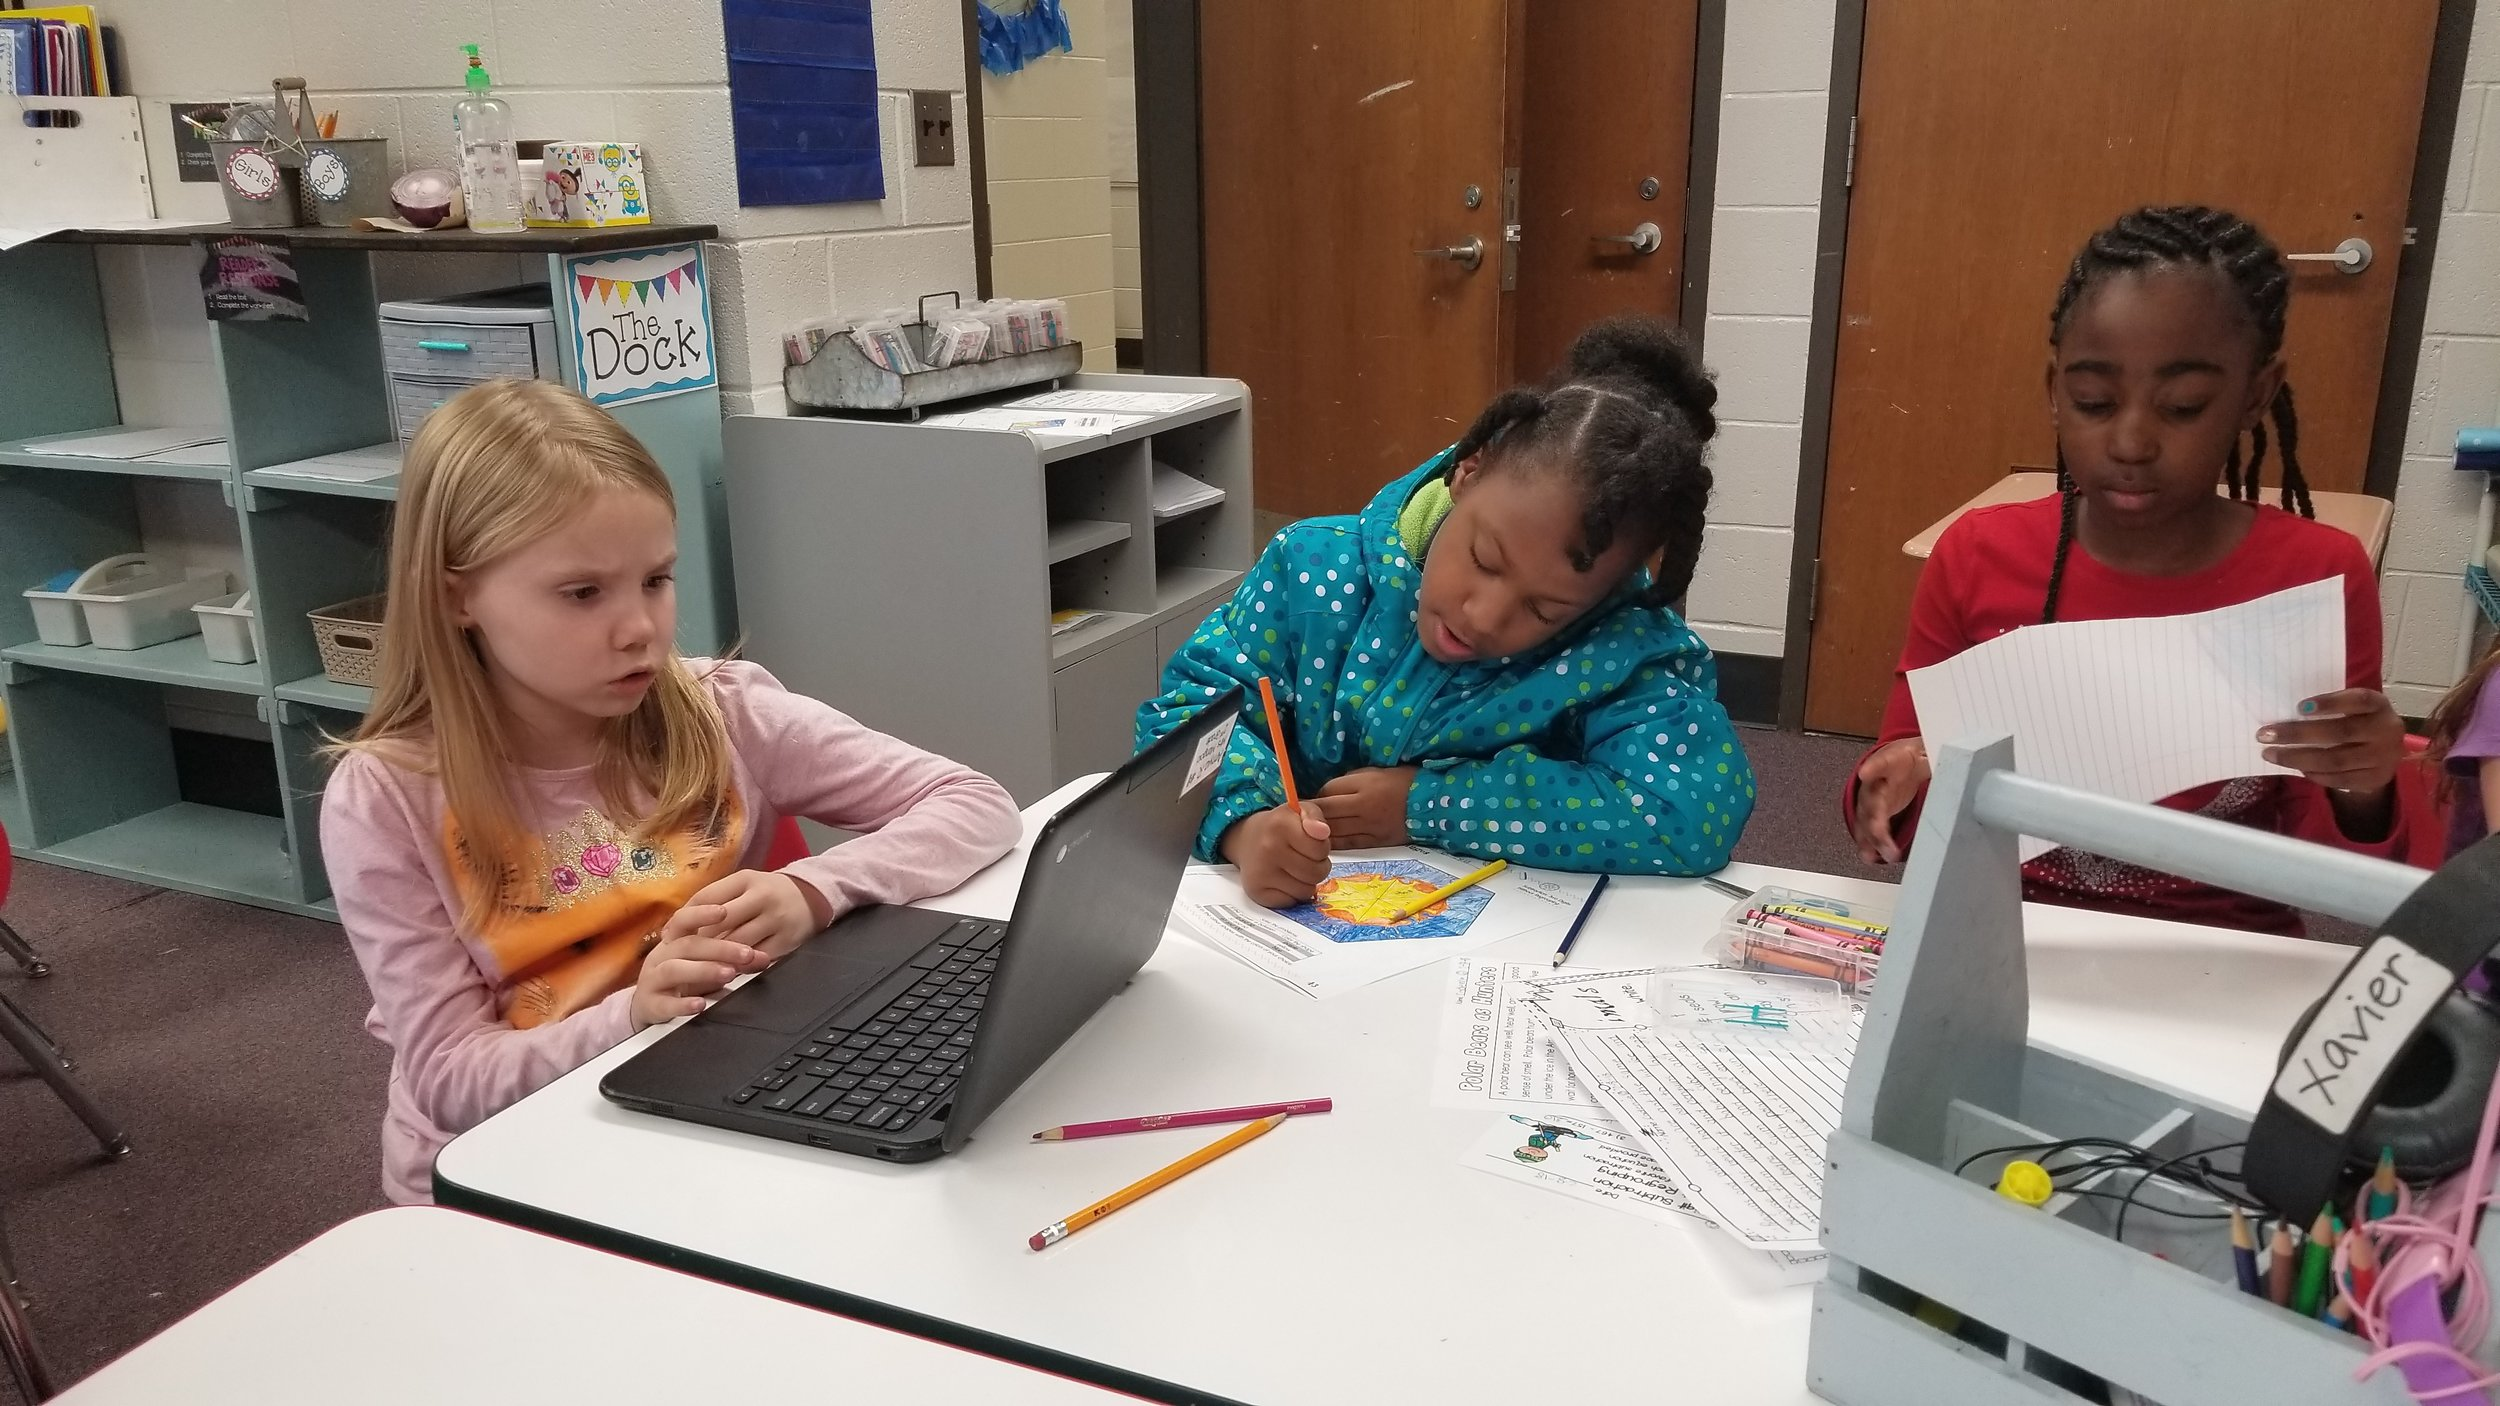 2nd graders working on classwork. With station rotation students are able to work on different assignments at their level.